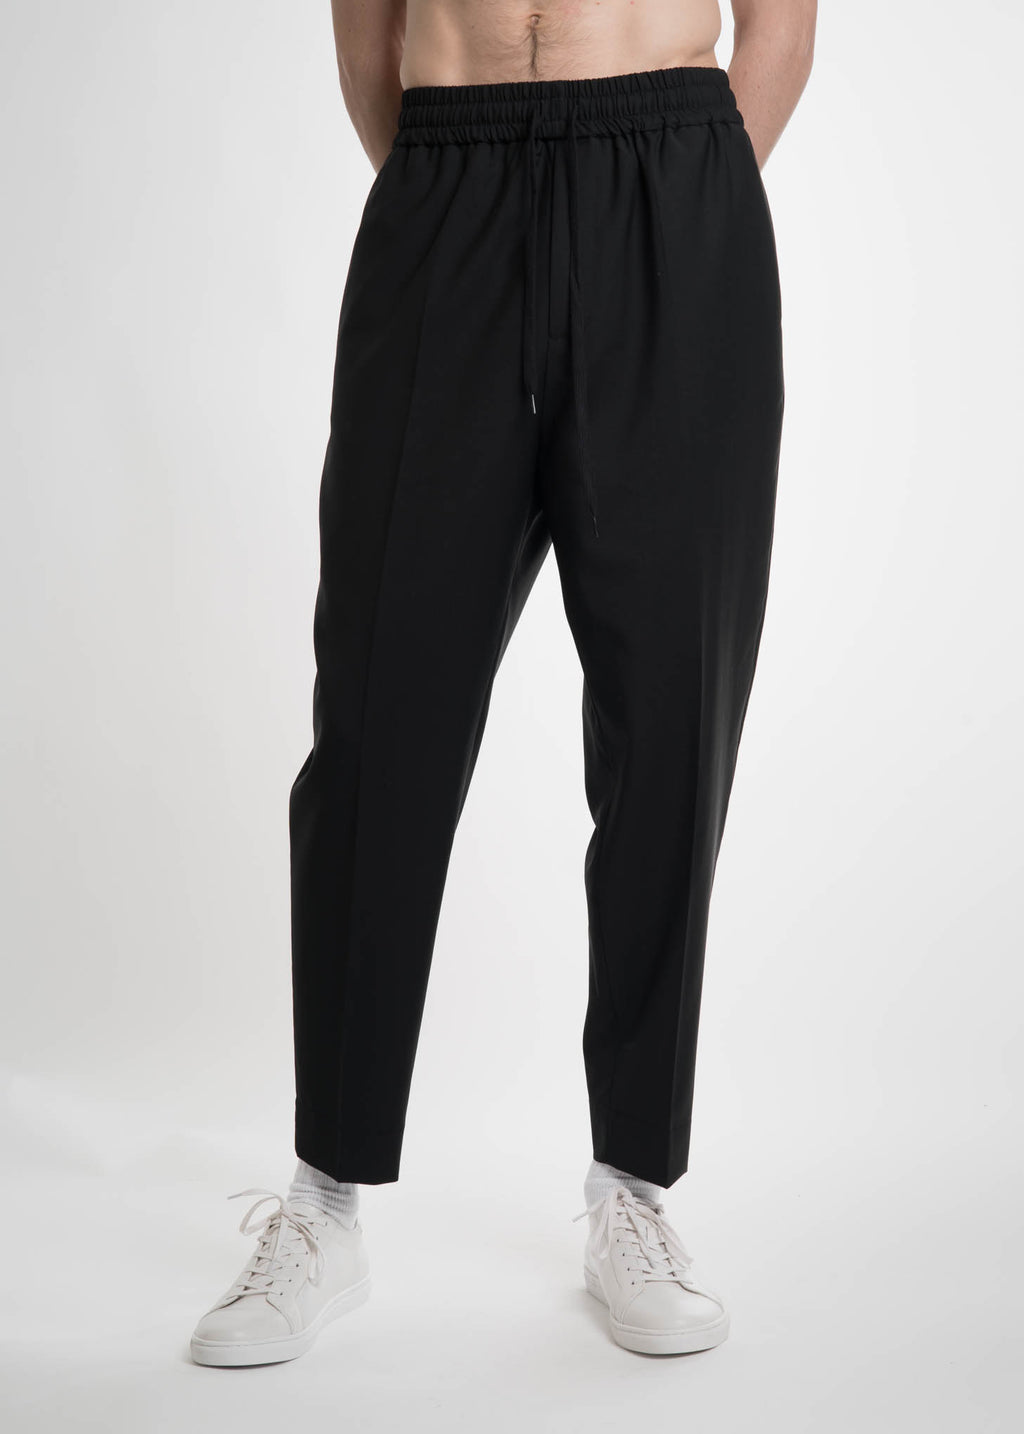 Black Jalousie Trousers